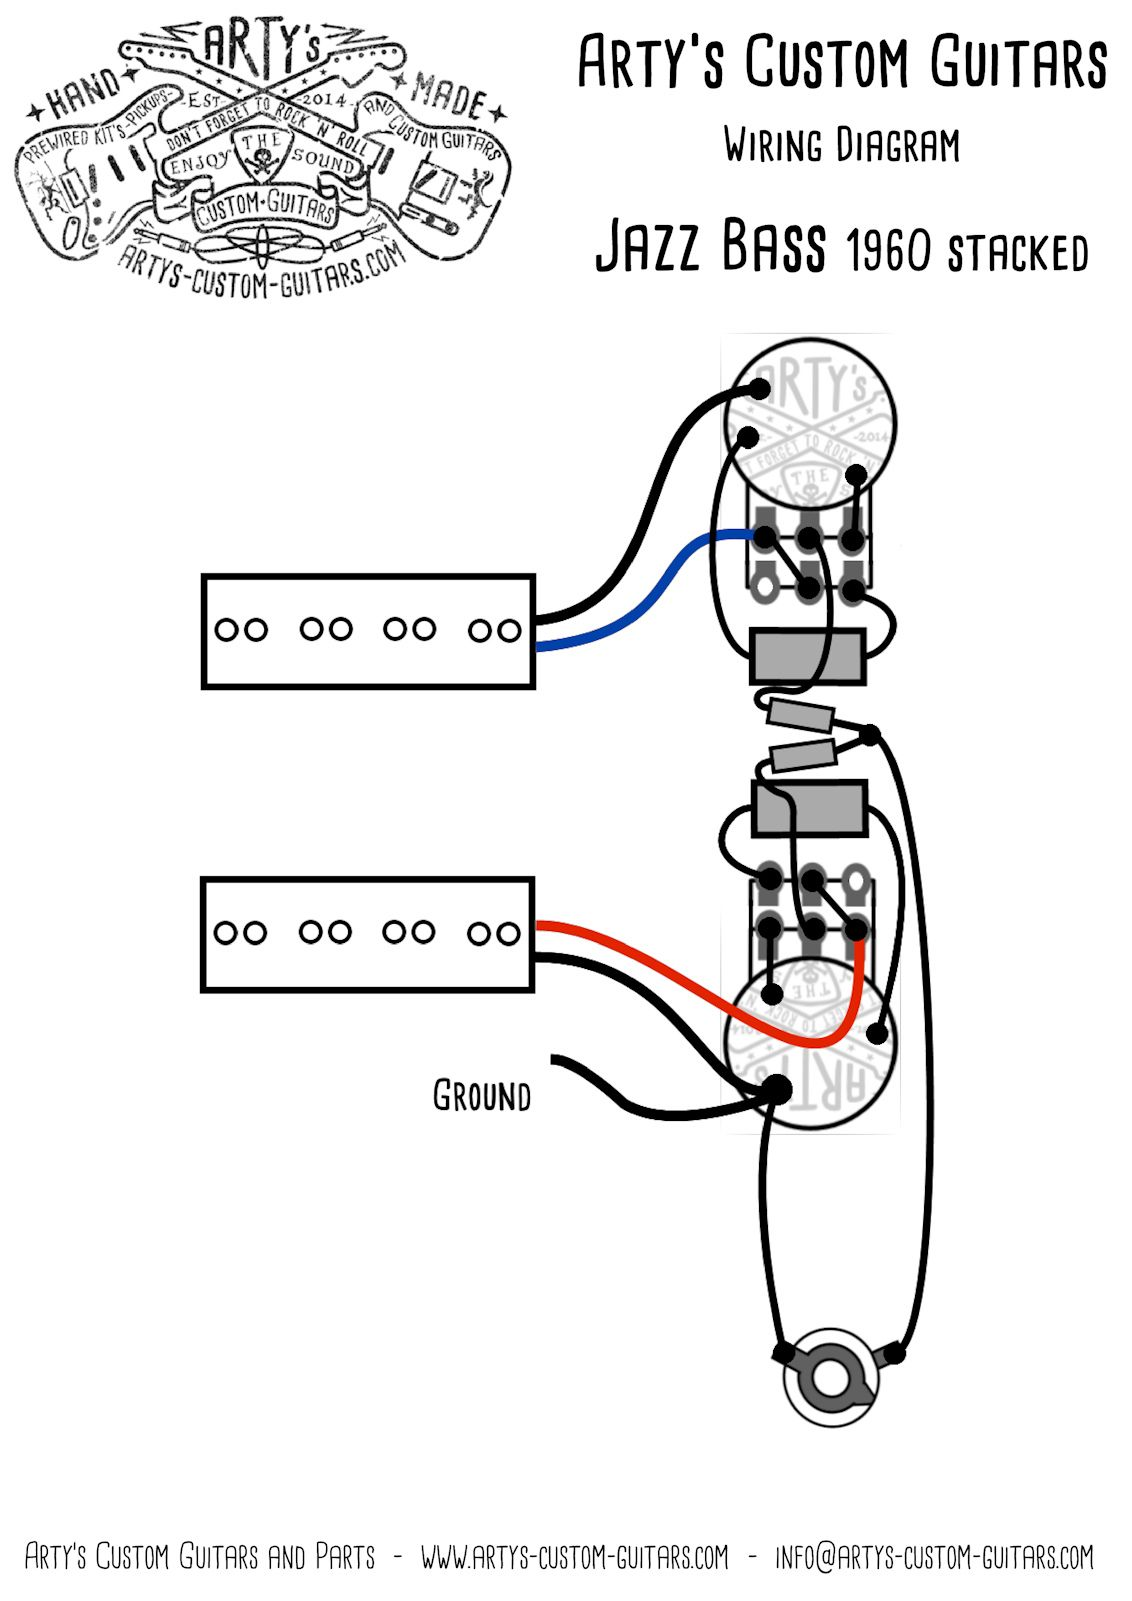 hight resolution of arty s custom guitars vintage pre wired prewired kit wiring assembly harness arty jazz bass 1960